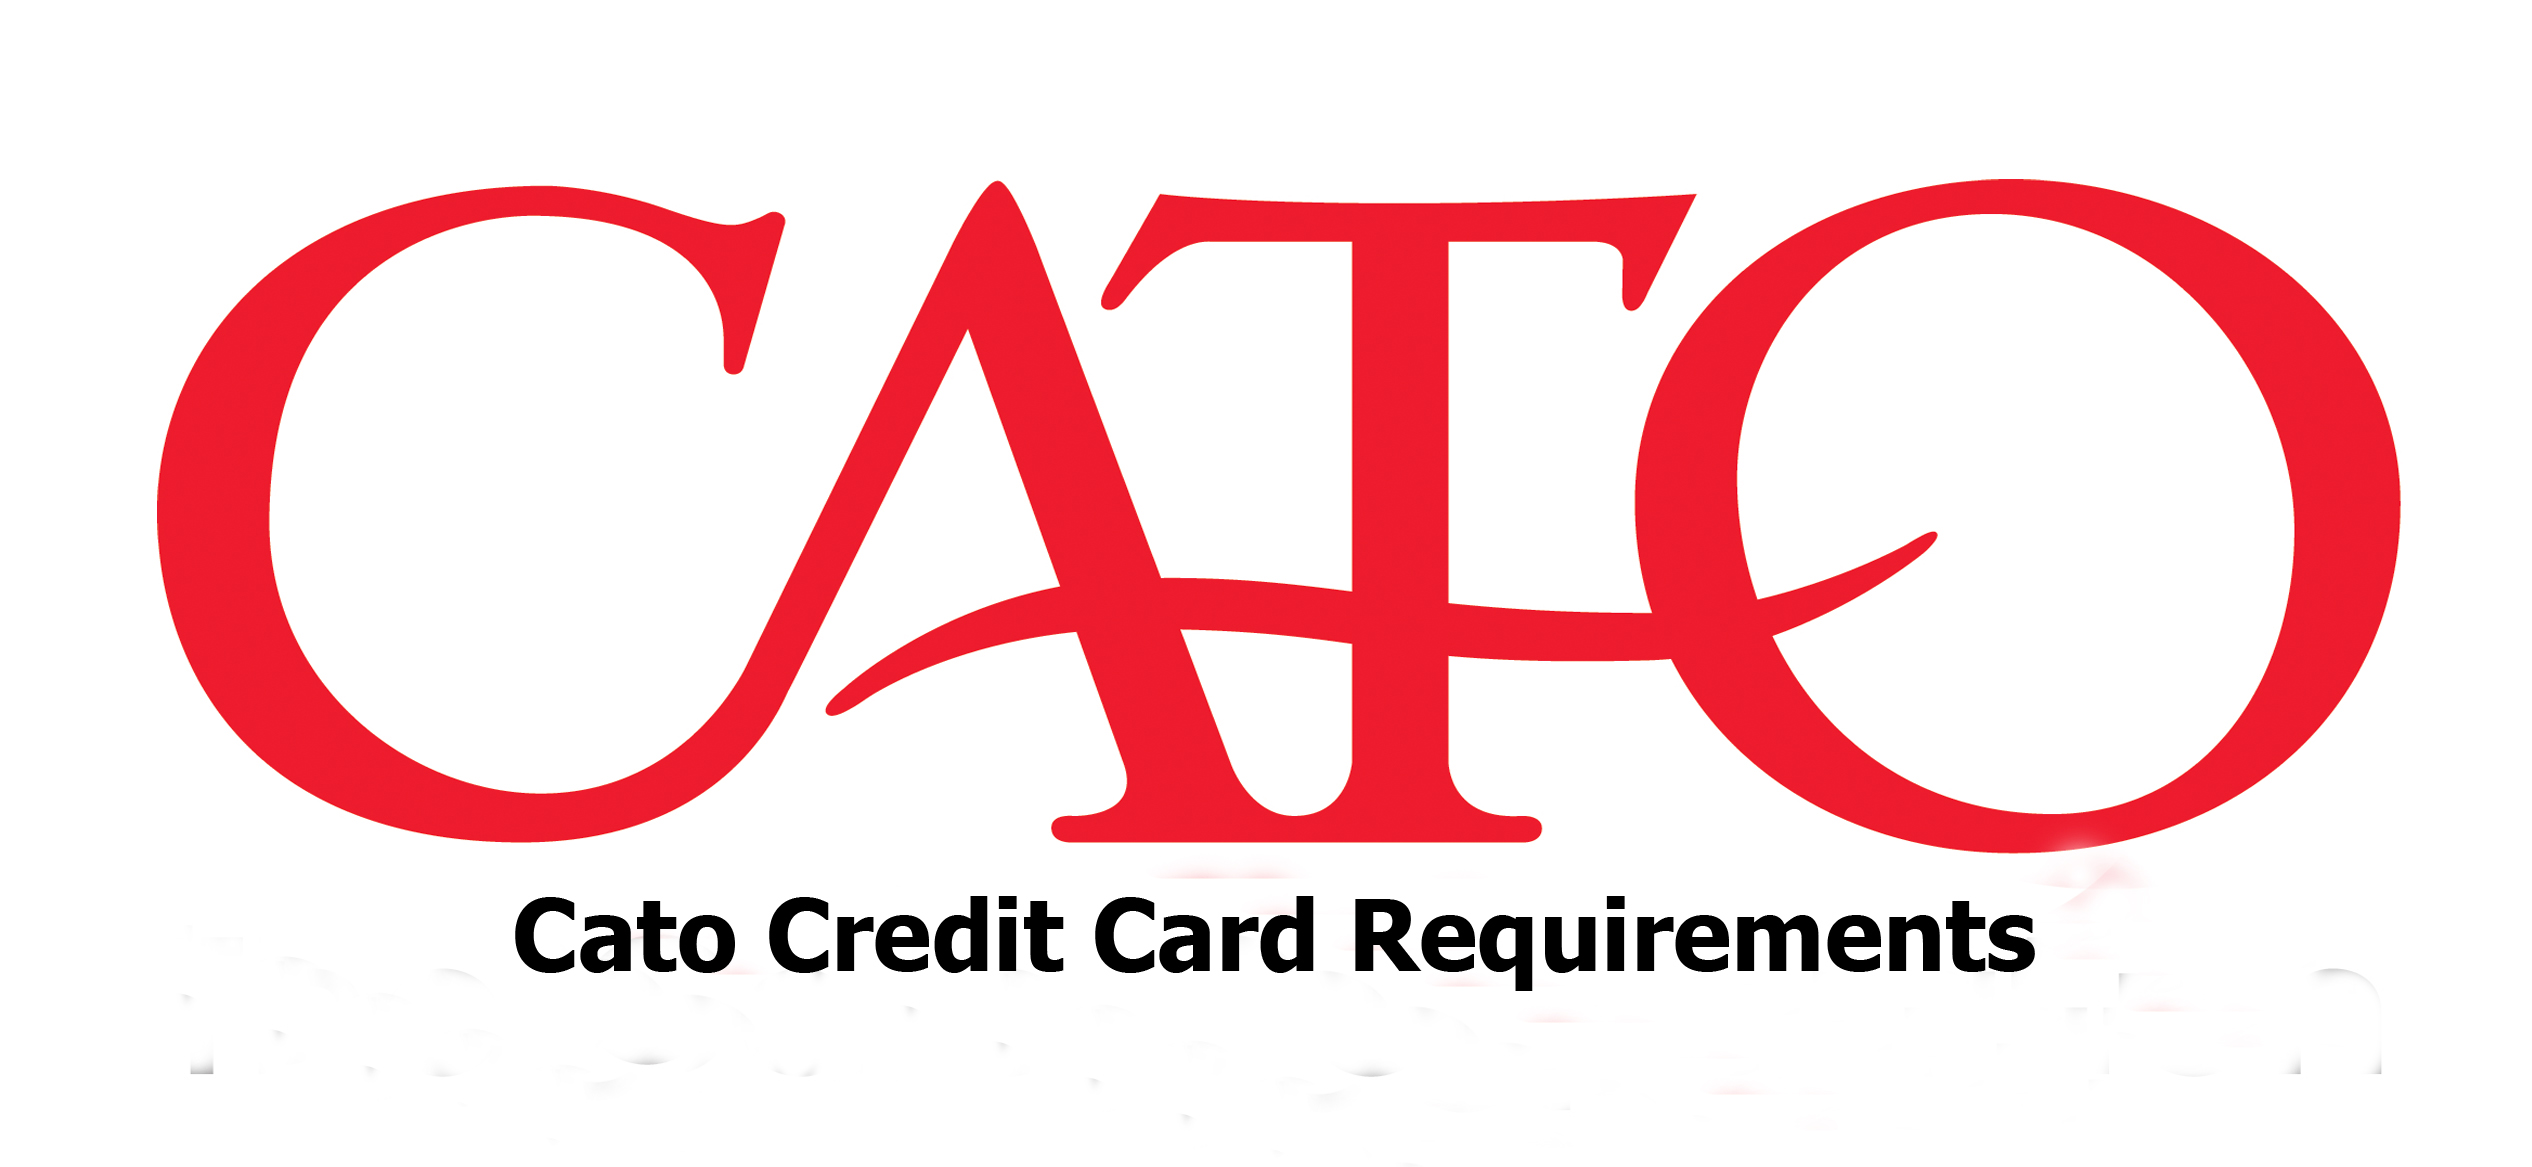 Cato Credit Card Requirements - Cato Credit Card Approval Odds